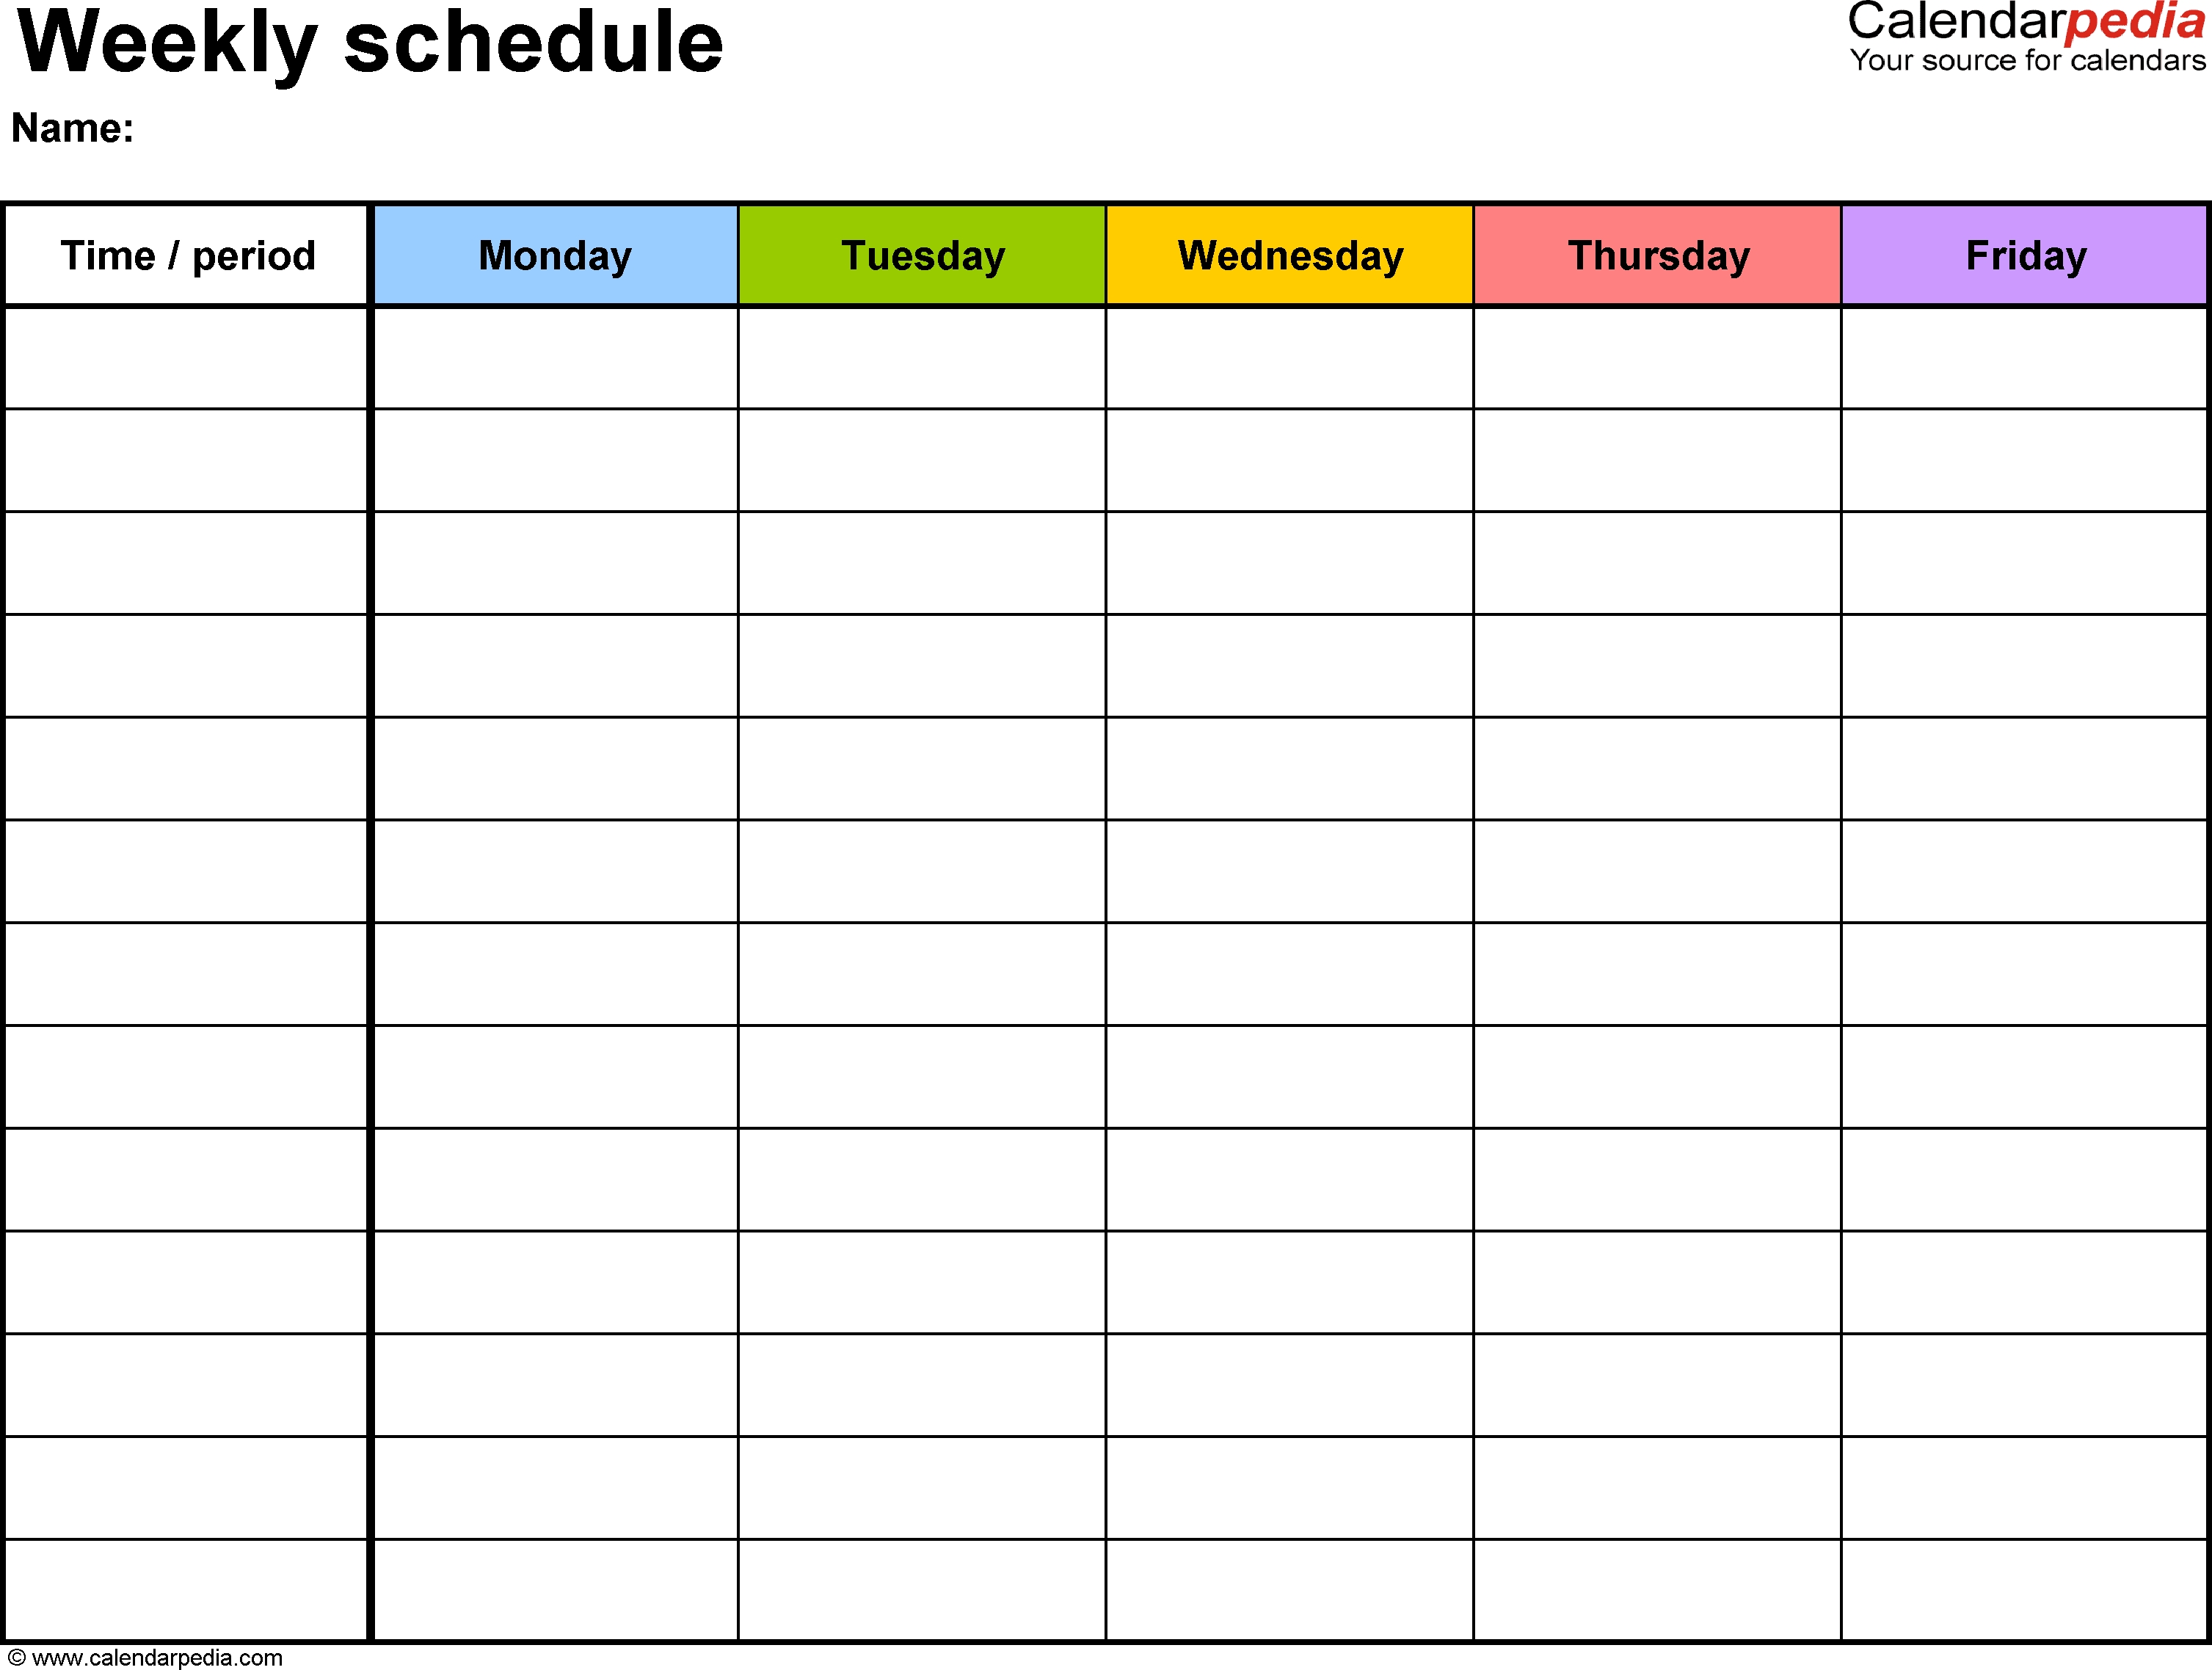 Printable Weekly Planner With Time Slots